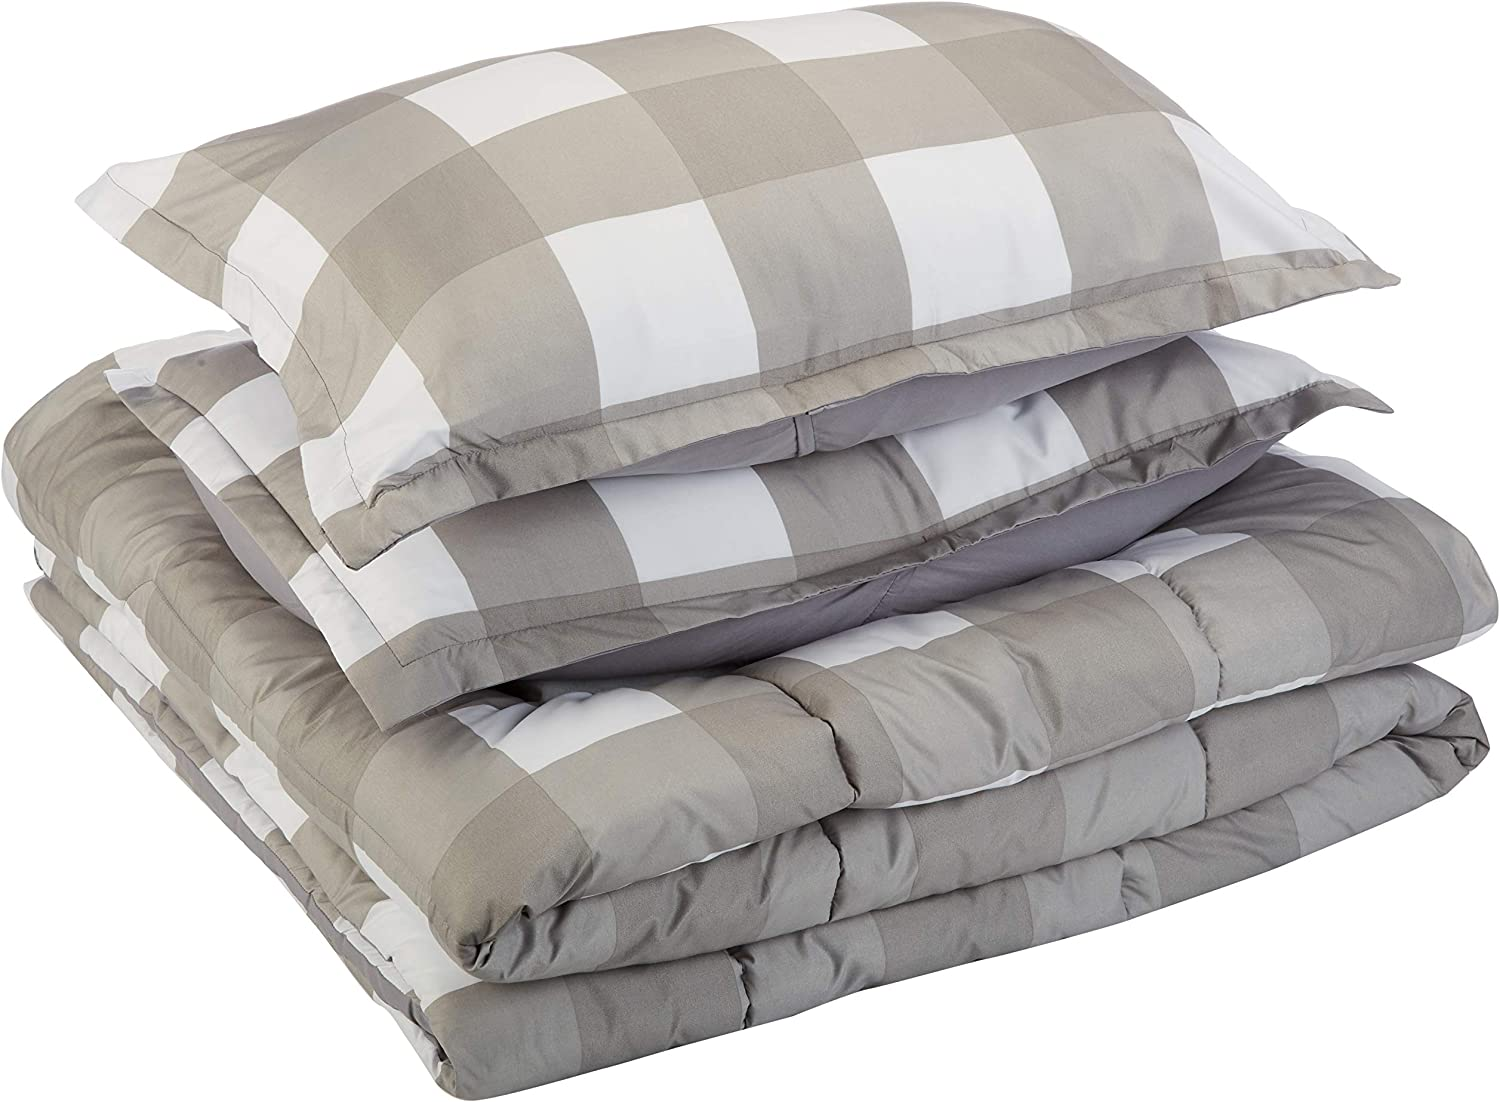 AmazonBasics Comforter Set, Full / Queen, Dark Grey Oversized Gingham, Microfiber, Ultra-Soft